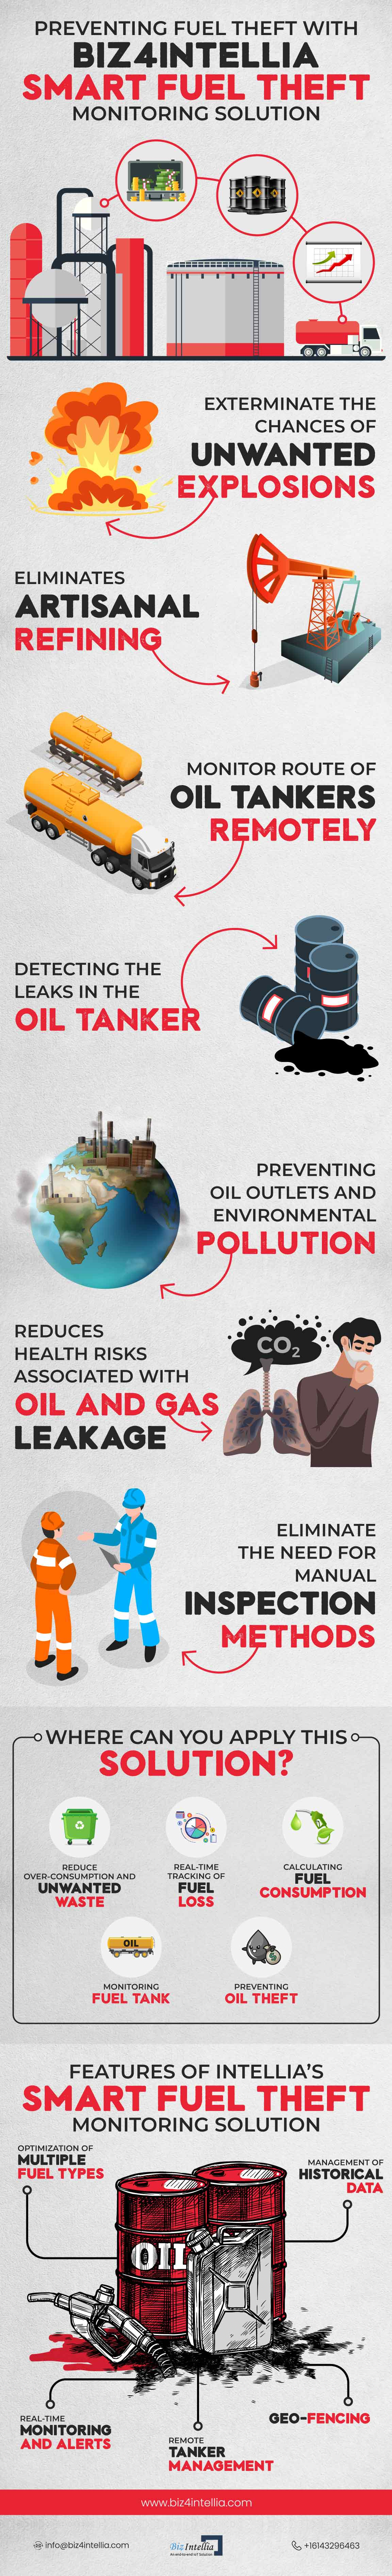 preventing-fuel-theft-with-biz4intellia-smart-fuel-theft-monitoring-solution